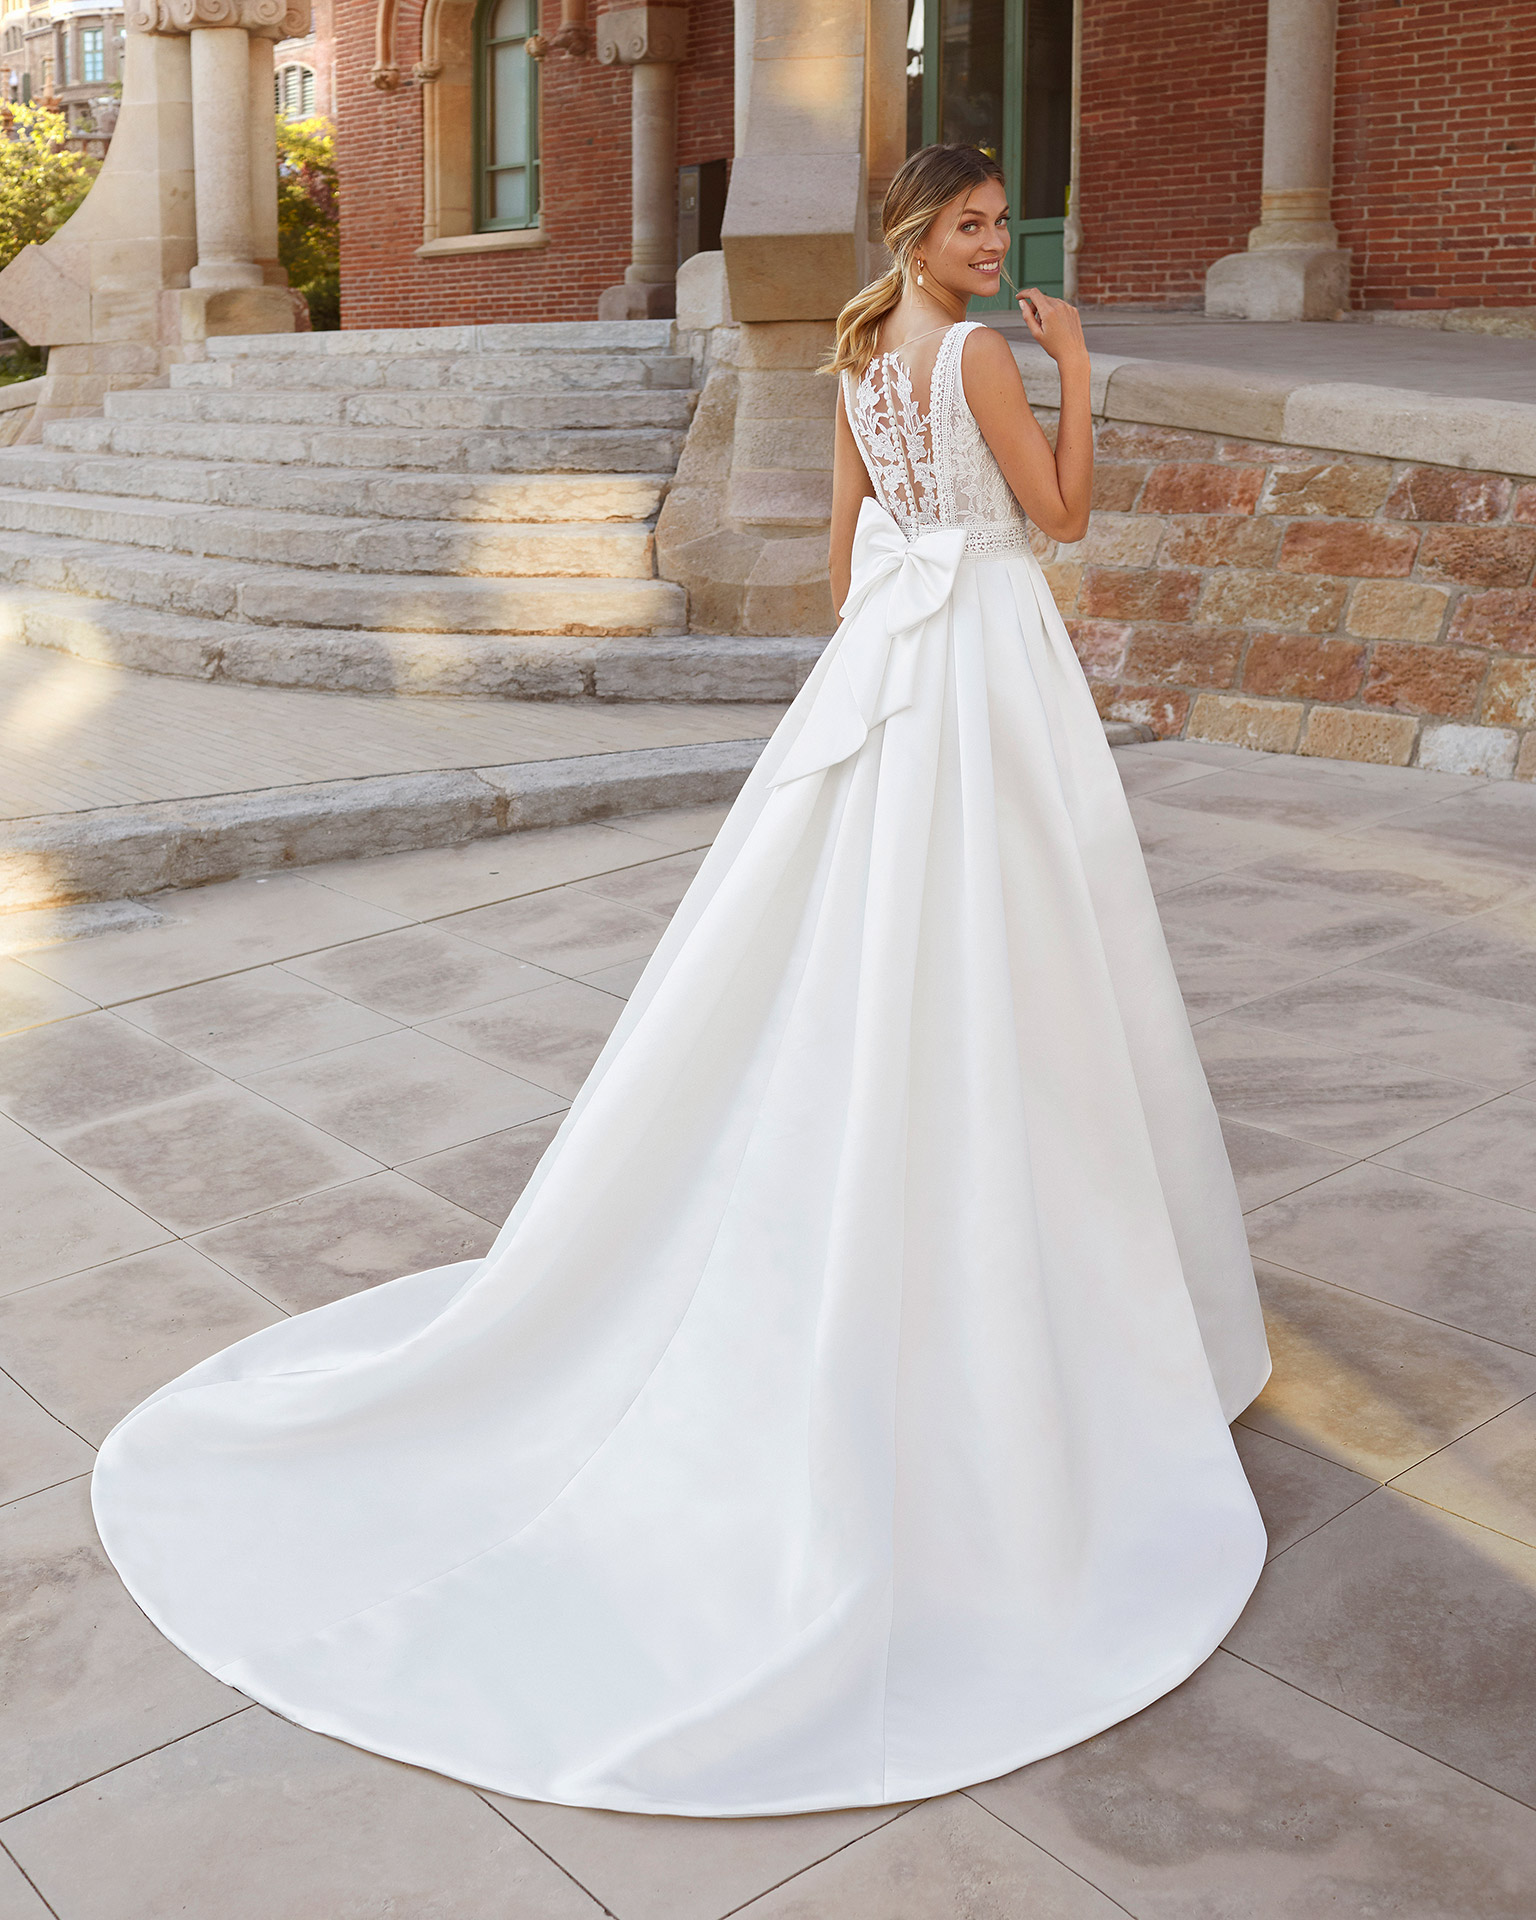 Classic-style wedding dress in satin with beaded lace on neckline and waist. V-neckline and sheer back in lace, with pockets and bow. 2021  Collection.